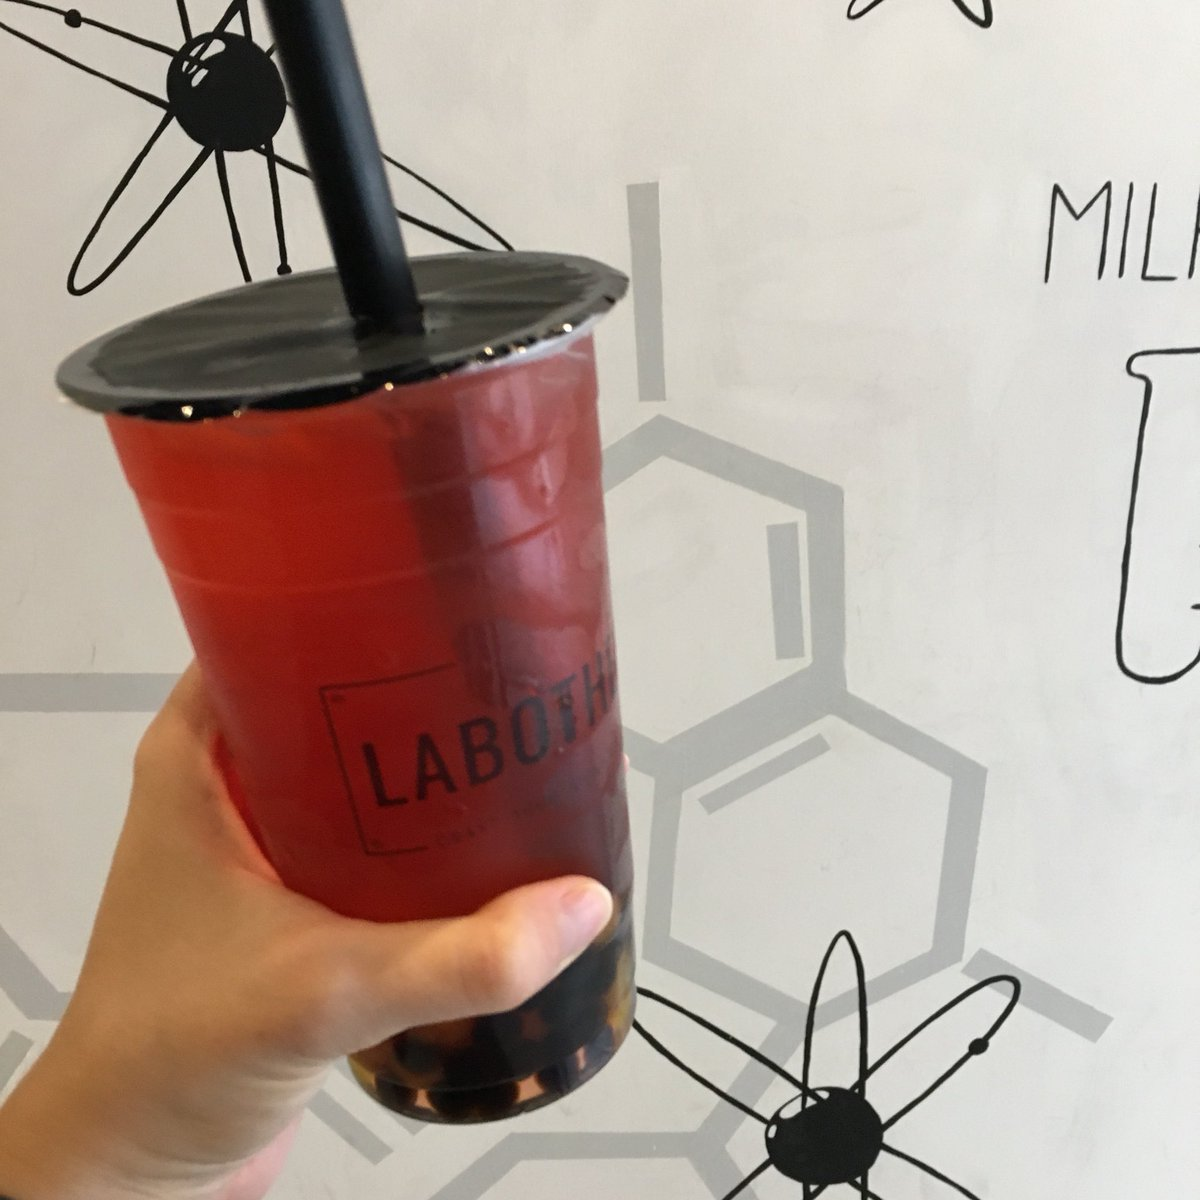 test Twitter Media - I went and checked out #Labothery in #Toronto today. You pick all your ingredients to make your own bubble tea and they mix it up for you! Love the concept. https://t.co/u1qW0t4M8Y